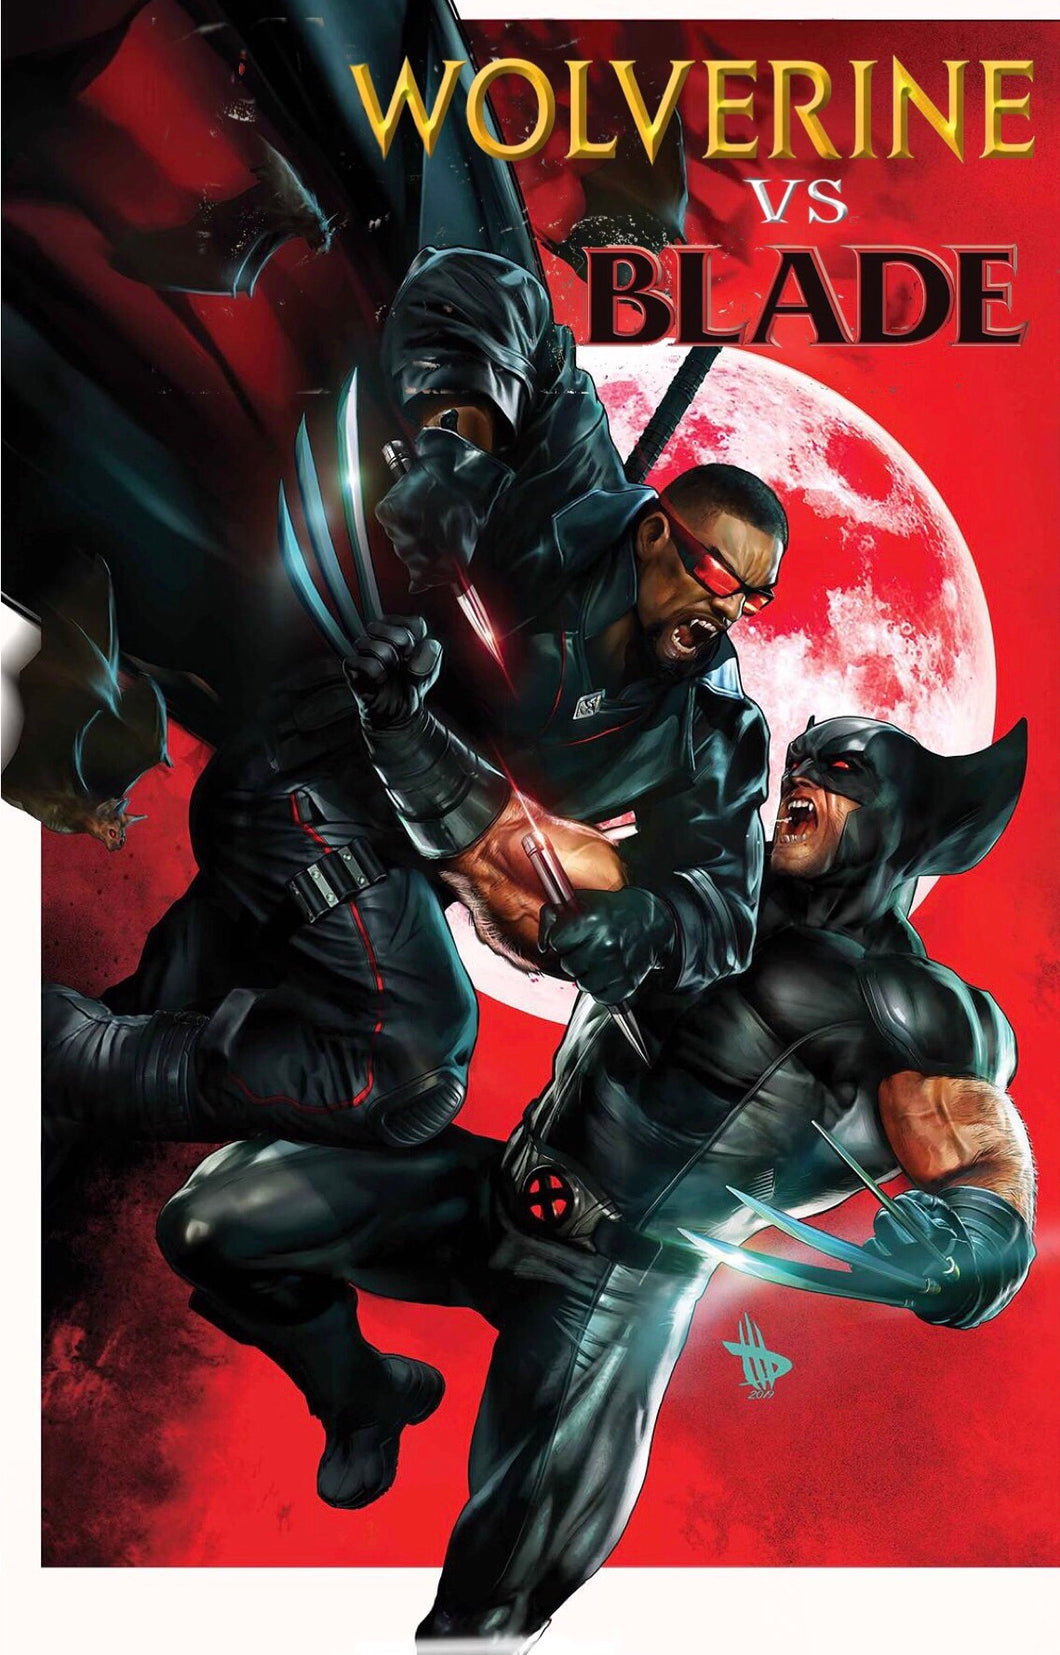 WOLVERINE VS BLADE SPECIAL #1 DAVE WILKINS VARIANT W/TRADE DRESS 07/10/19 FOC 06/17/19